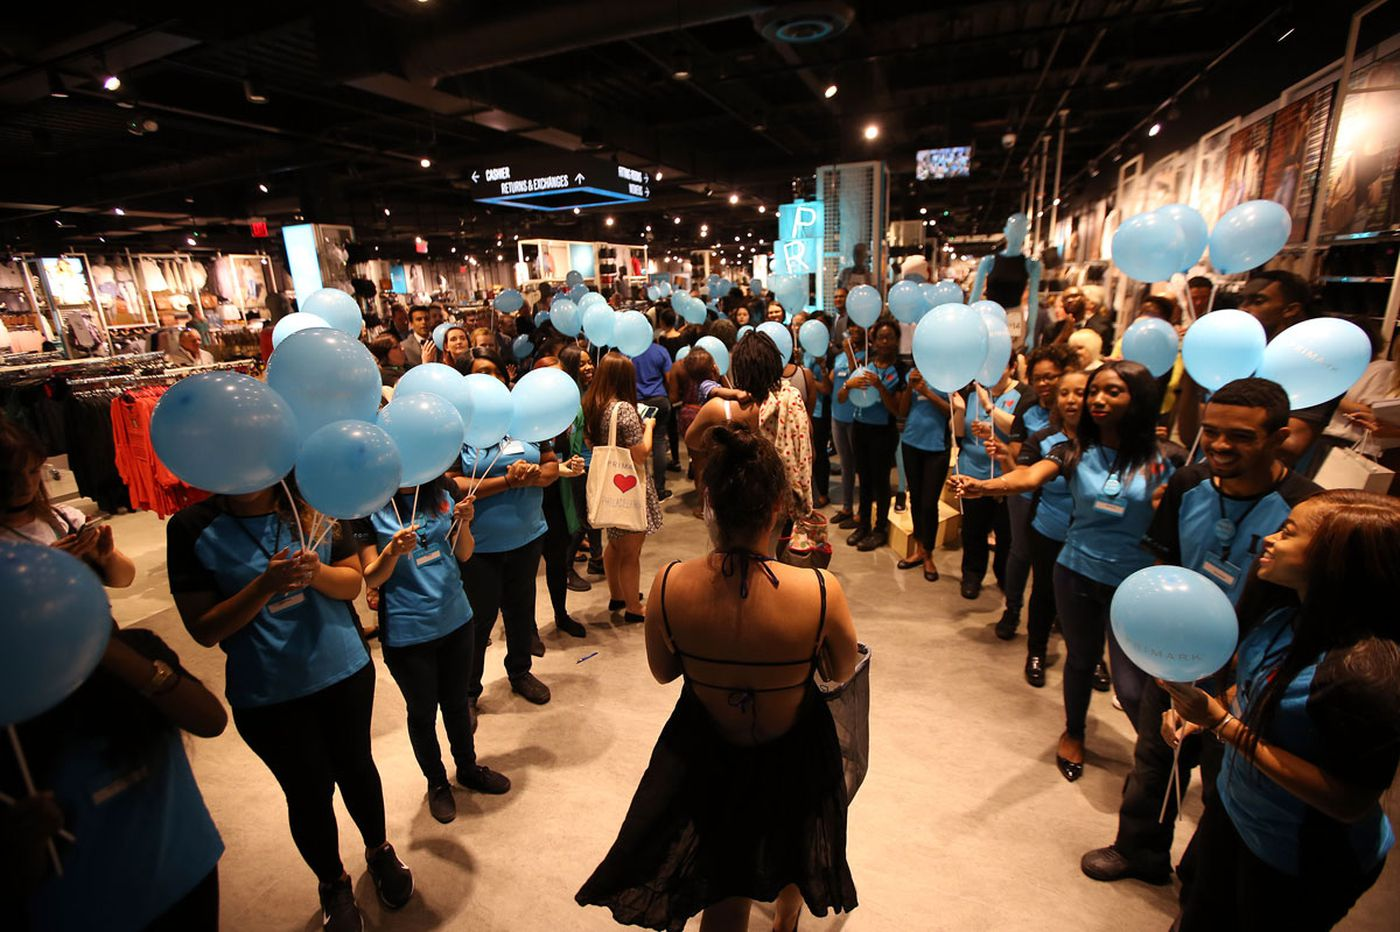 Primark's Irish invasion brings a 2nd store to the Philly burbs